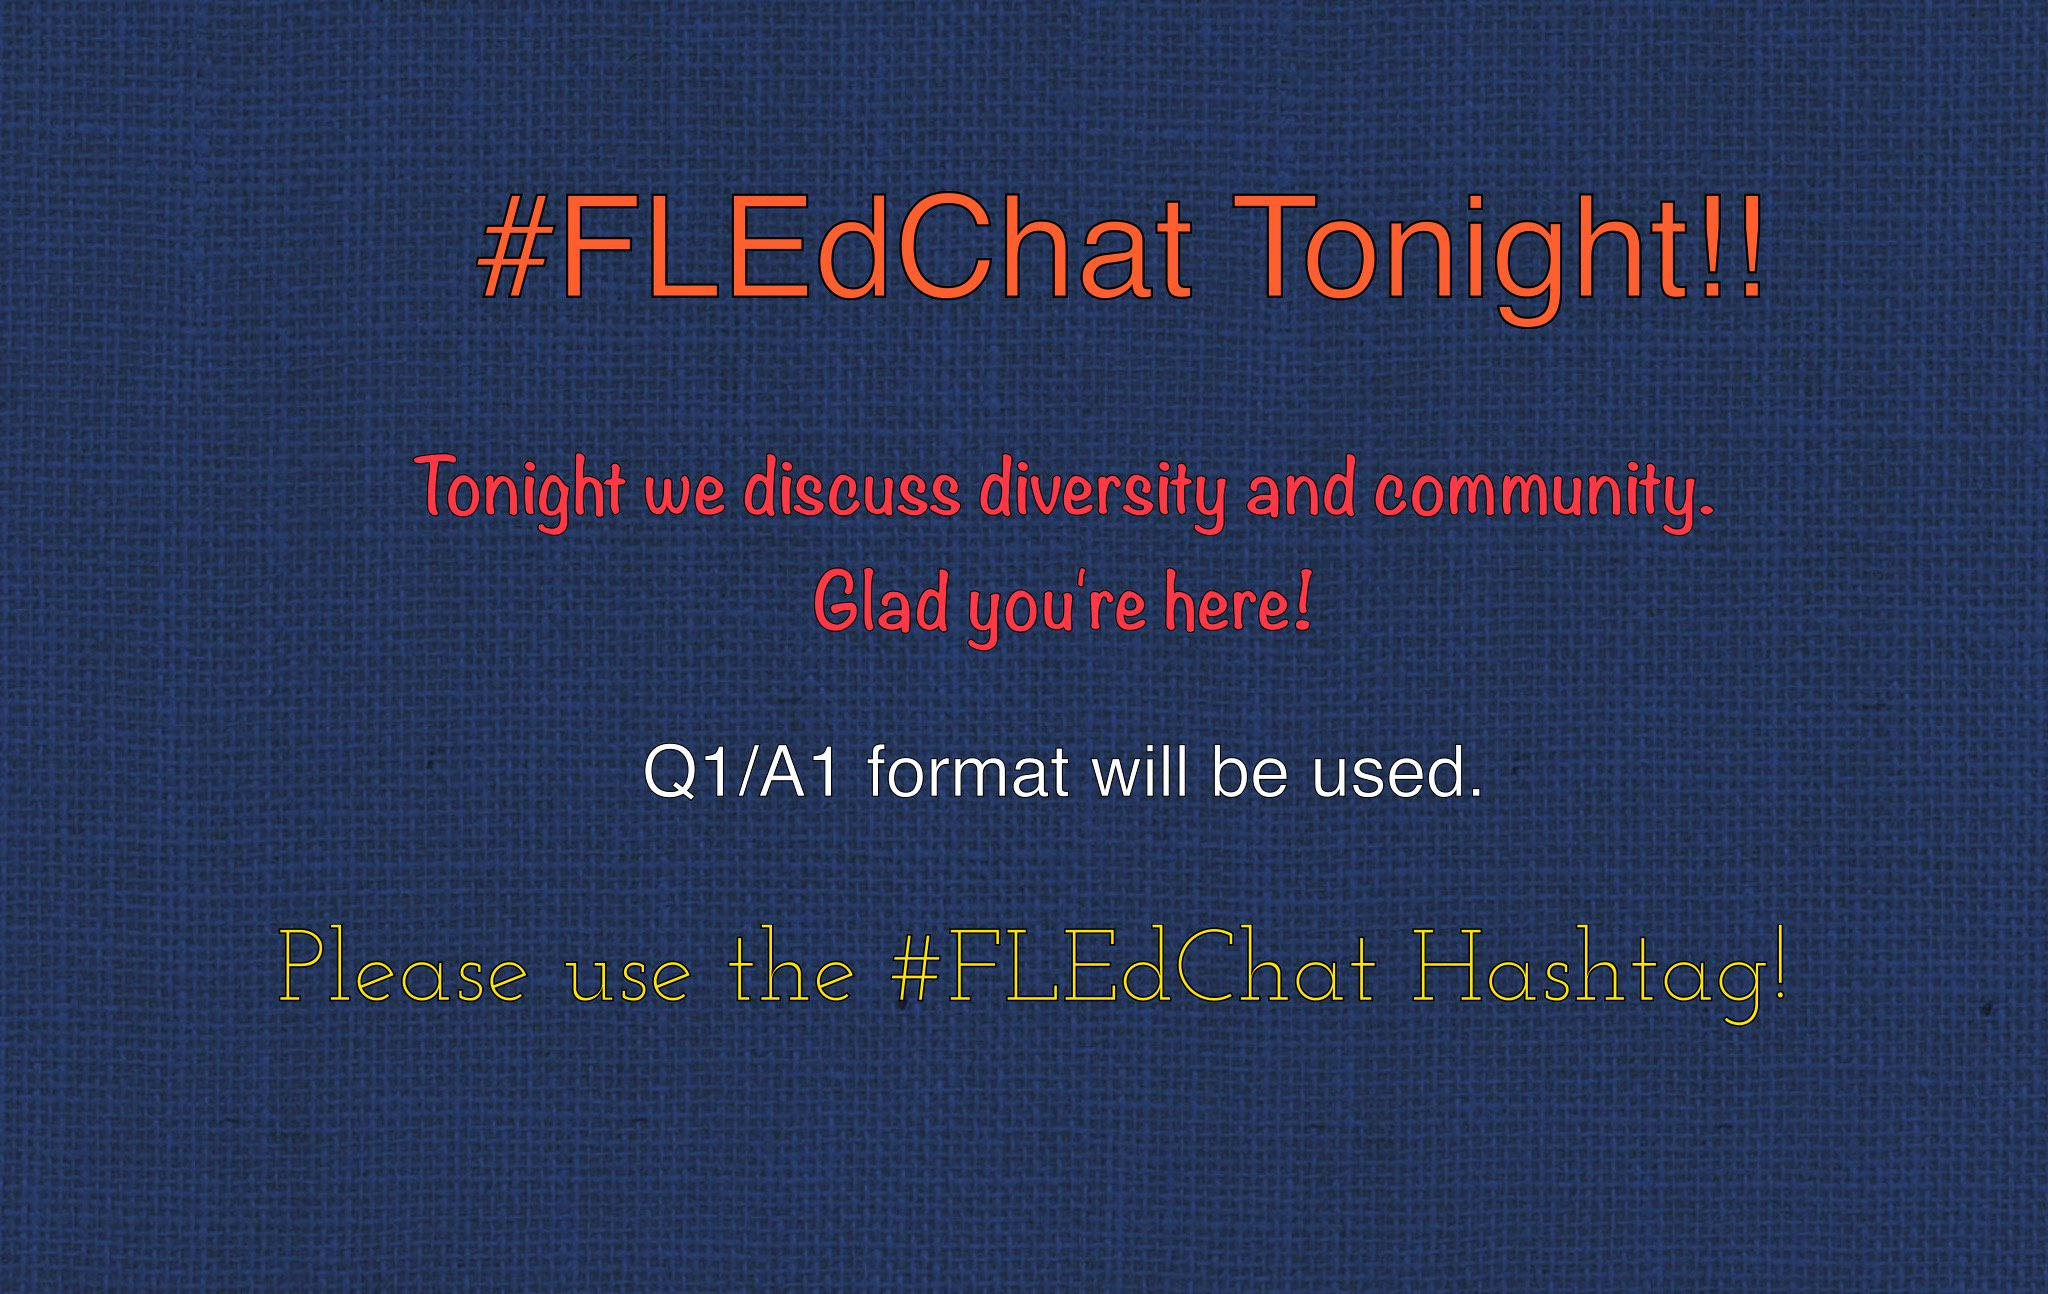 We will use the Q1/A1 answer format tonight for this chat and don't forget to use the #FLEdChat hashtag... https://t.co/48jql13RK5